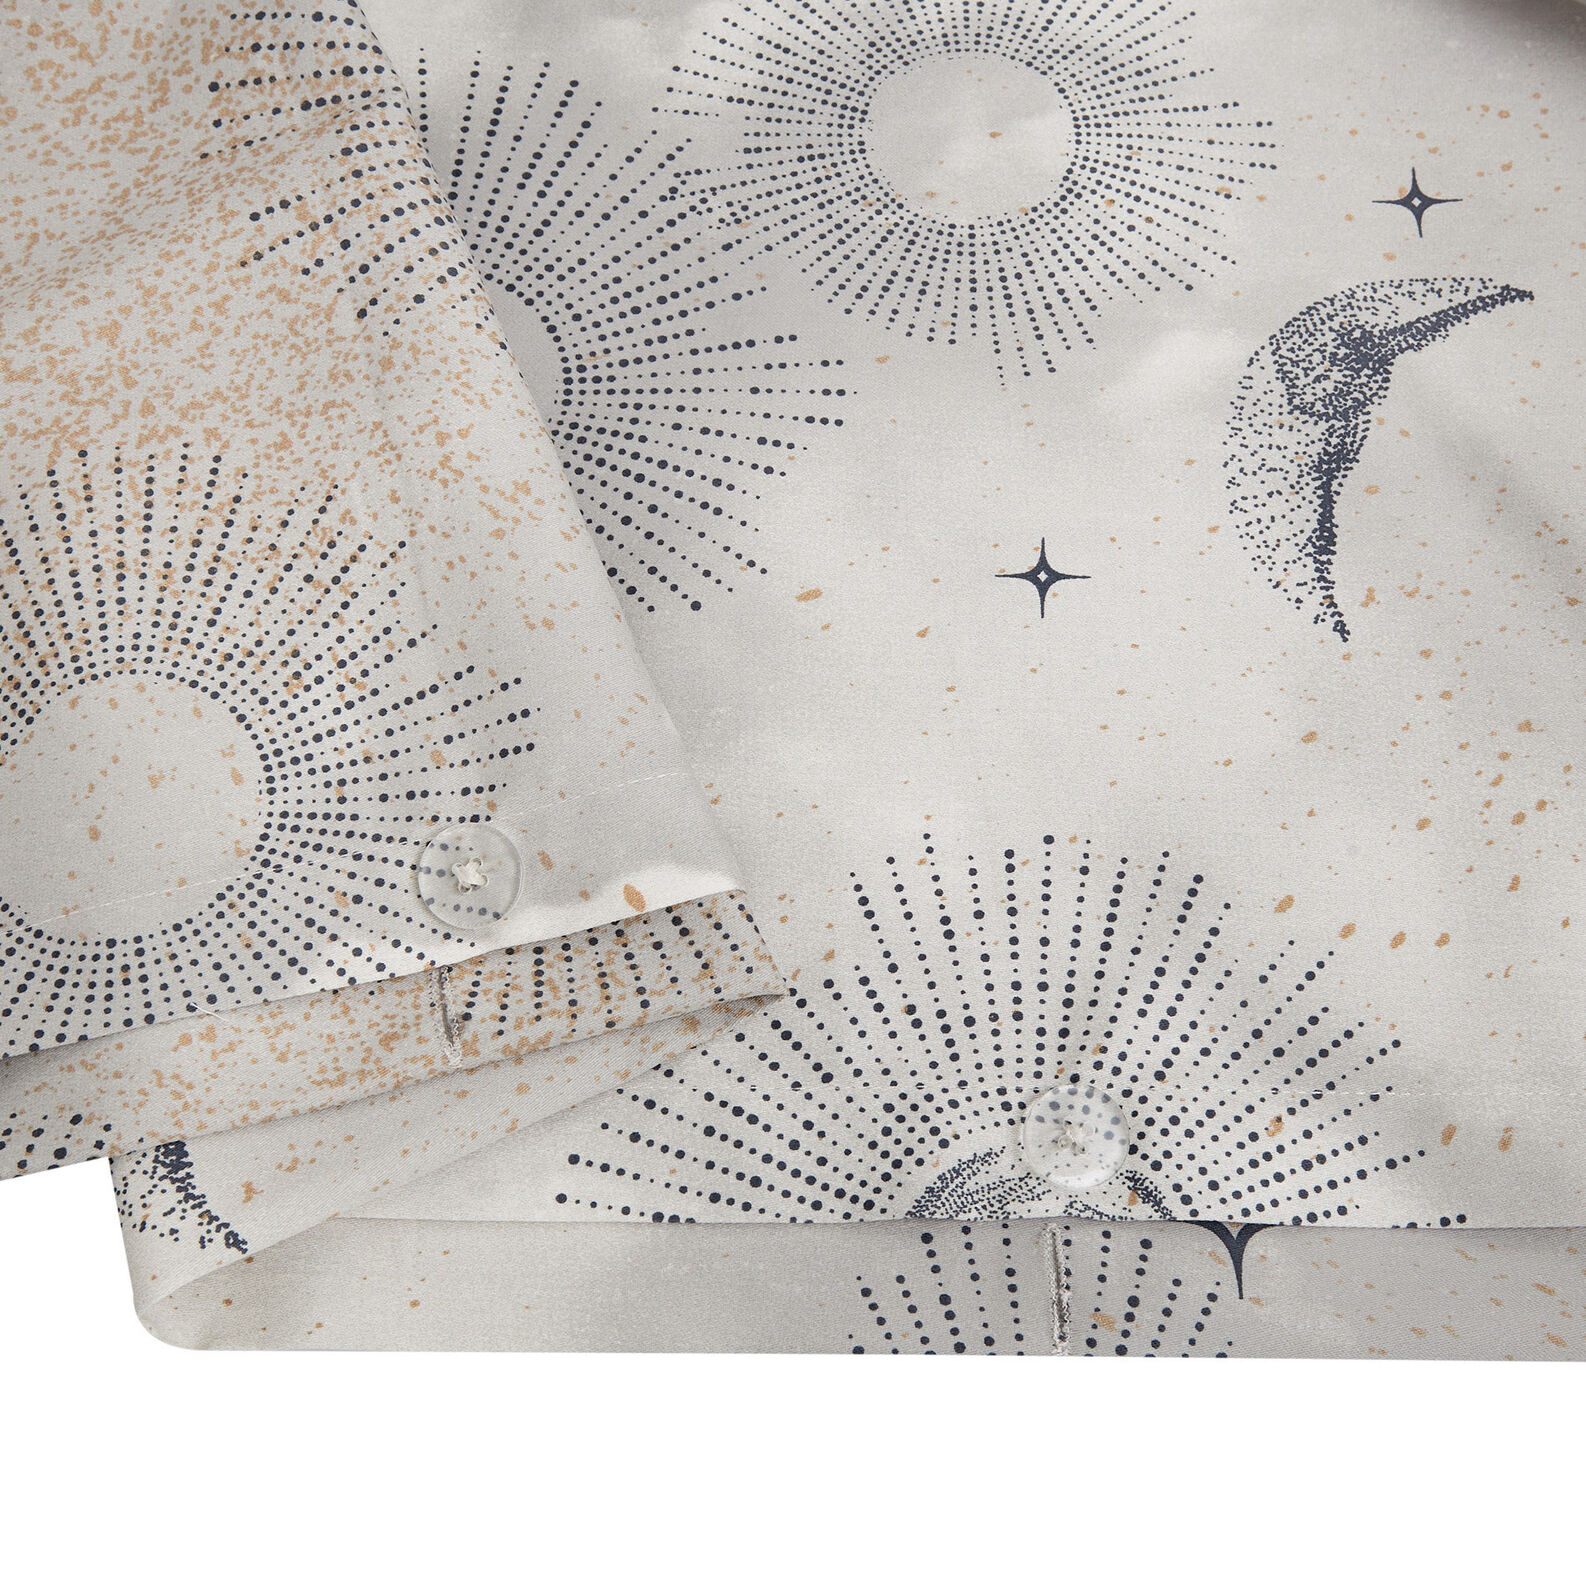 Sun and moon patterned duvet cover in cotton satin